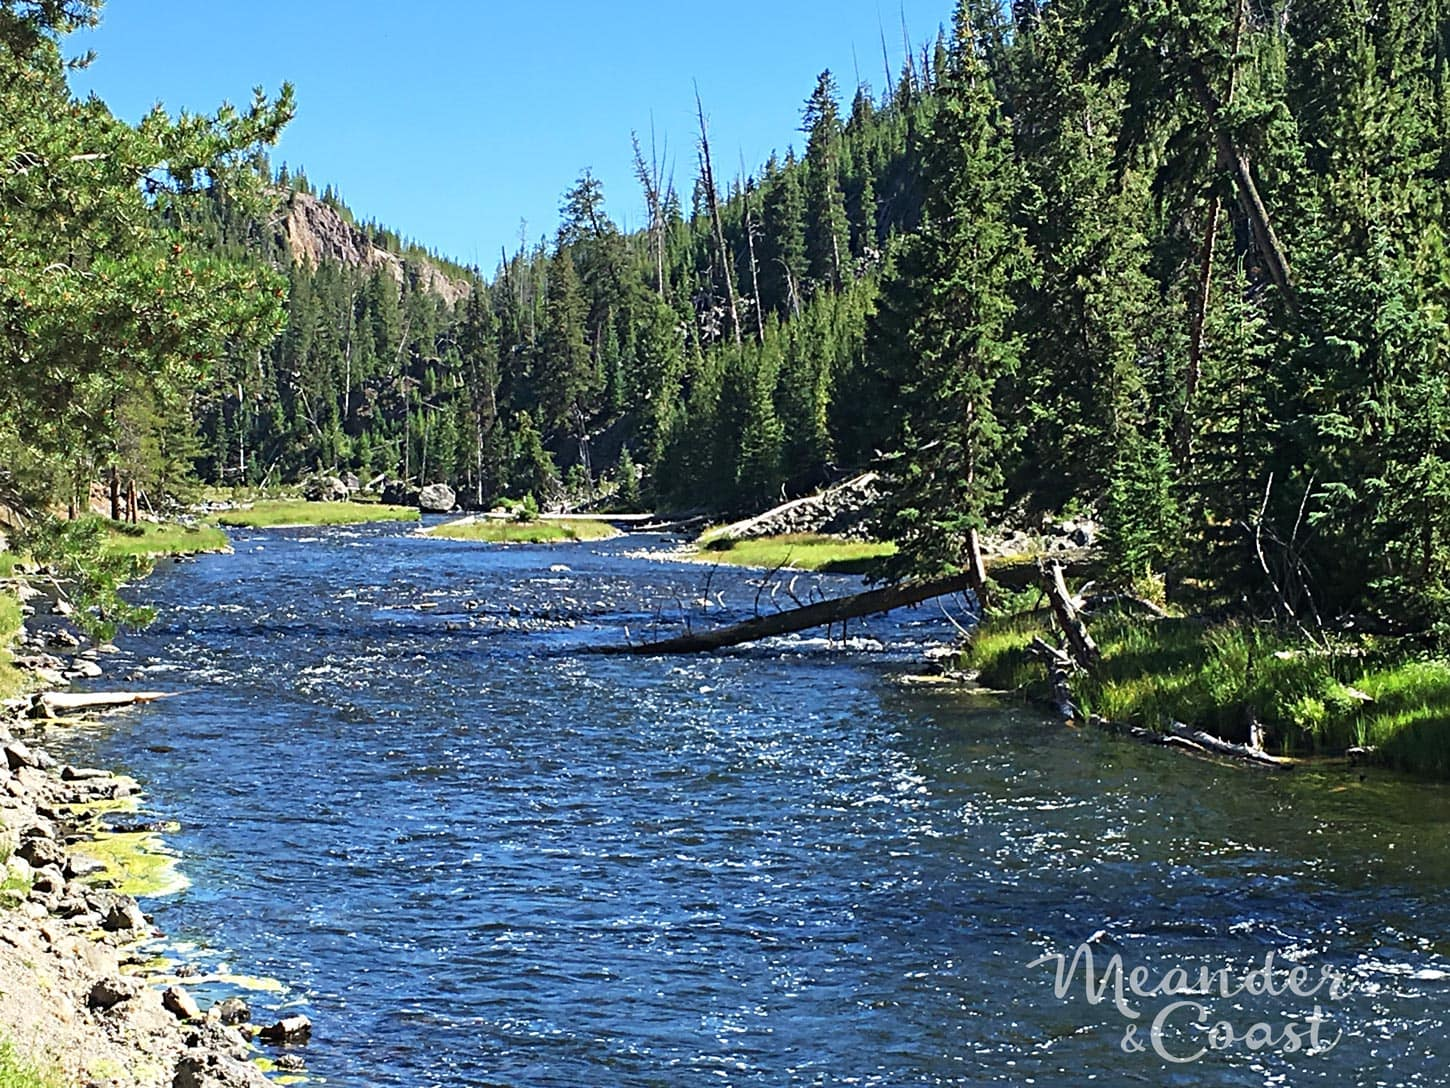 There's even a swimming hole! Hidden Gem--Firehole River Drive in Yellowstone National Park. | Best things to see in Yellowstone National Park that aren't Old Faithful. Meander & Coast #yellowstone #nationalpark #yellowstoneattractions #thingstosee #wyoming #Firehole